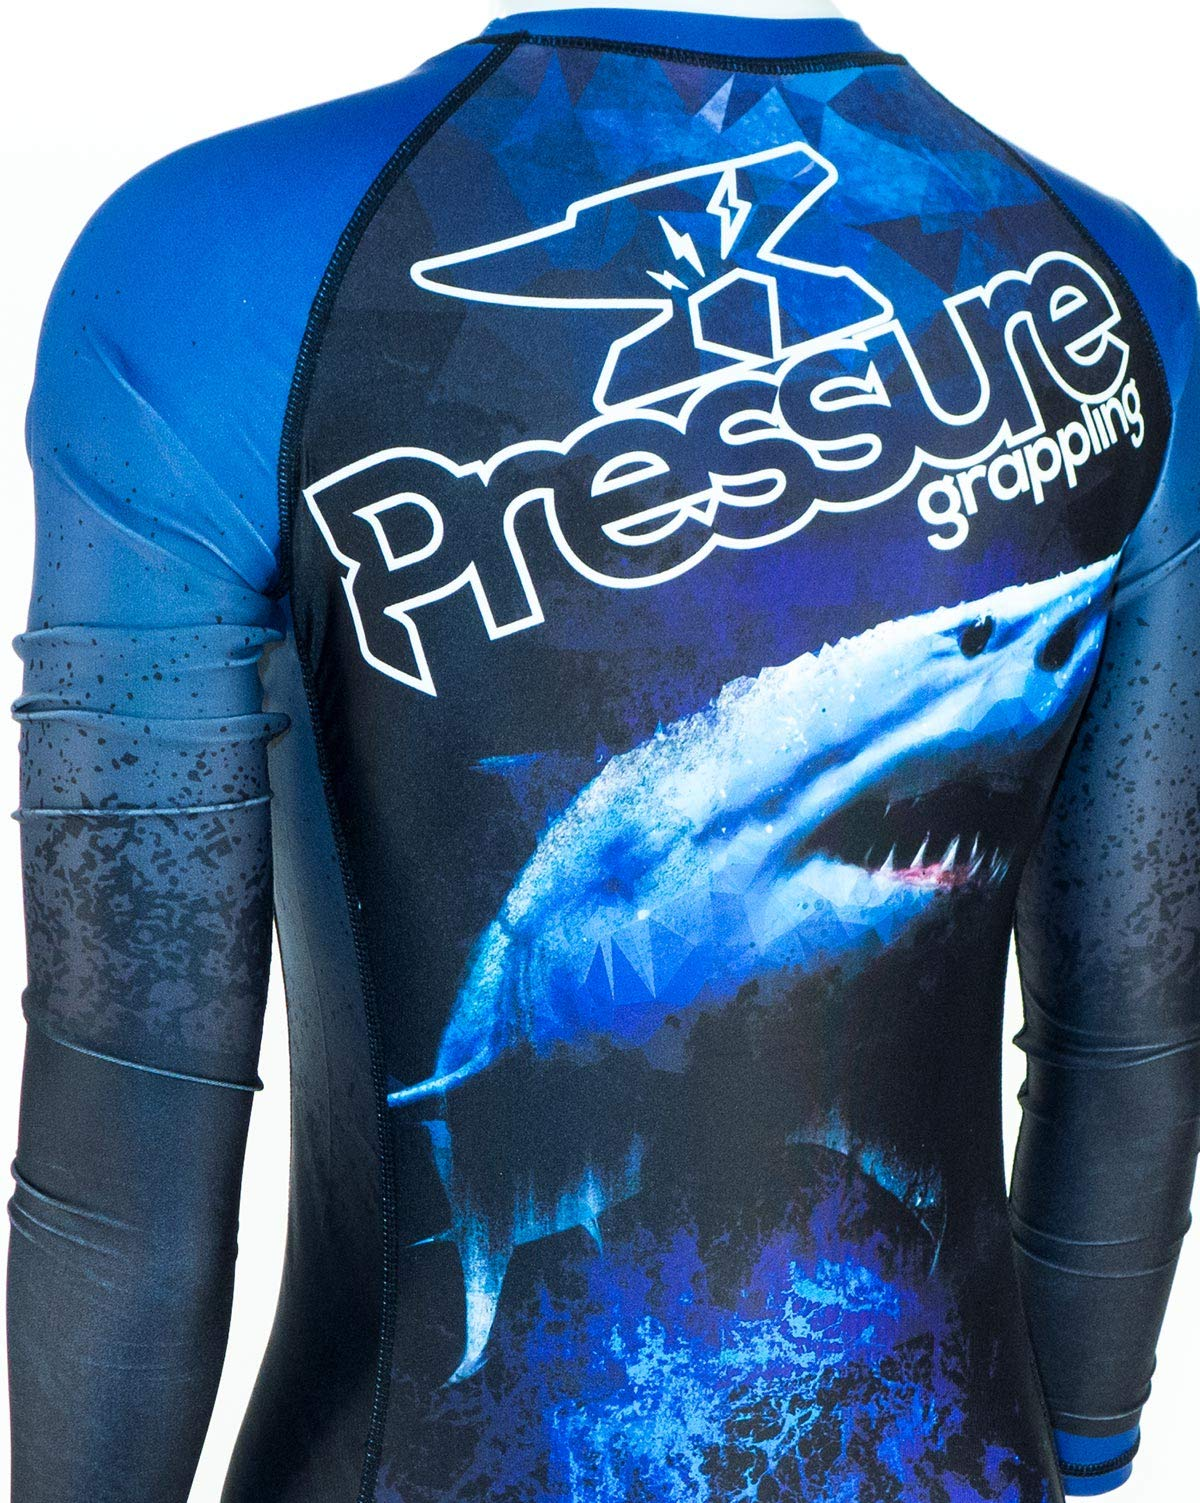 Pressure Grappling Women's Premium BJJ Long Sleeve Rash Guard with Lockdown Band (Hakari, Extra Large) by Pressure Grappling